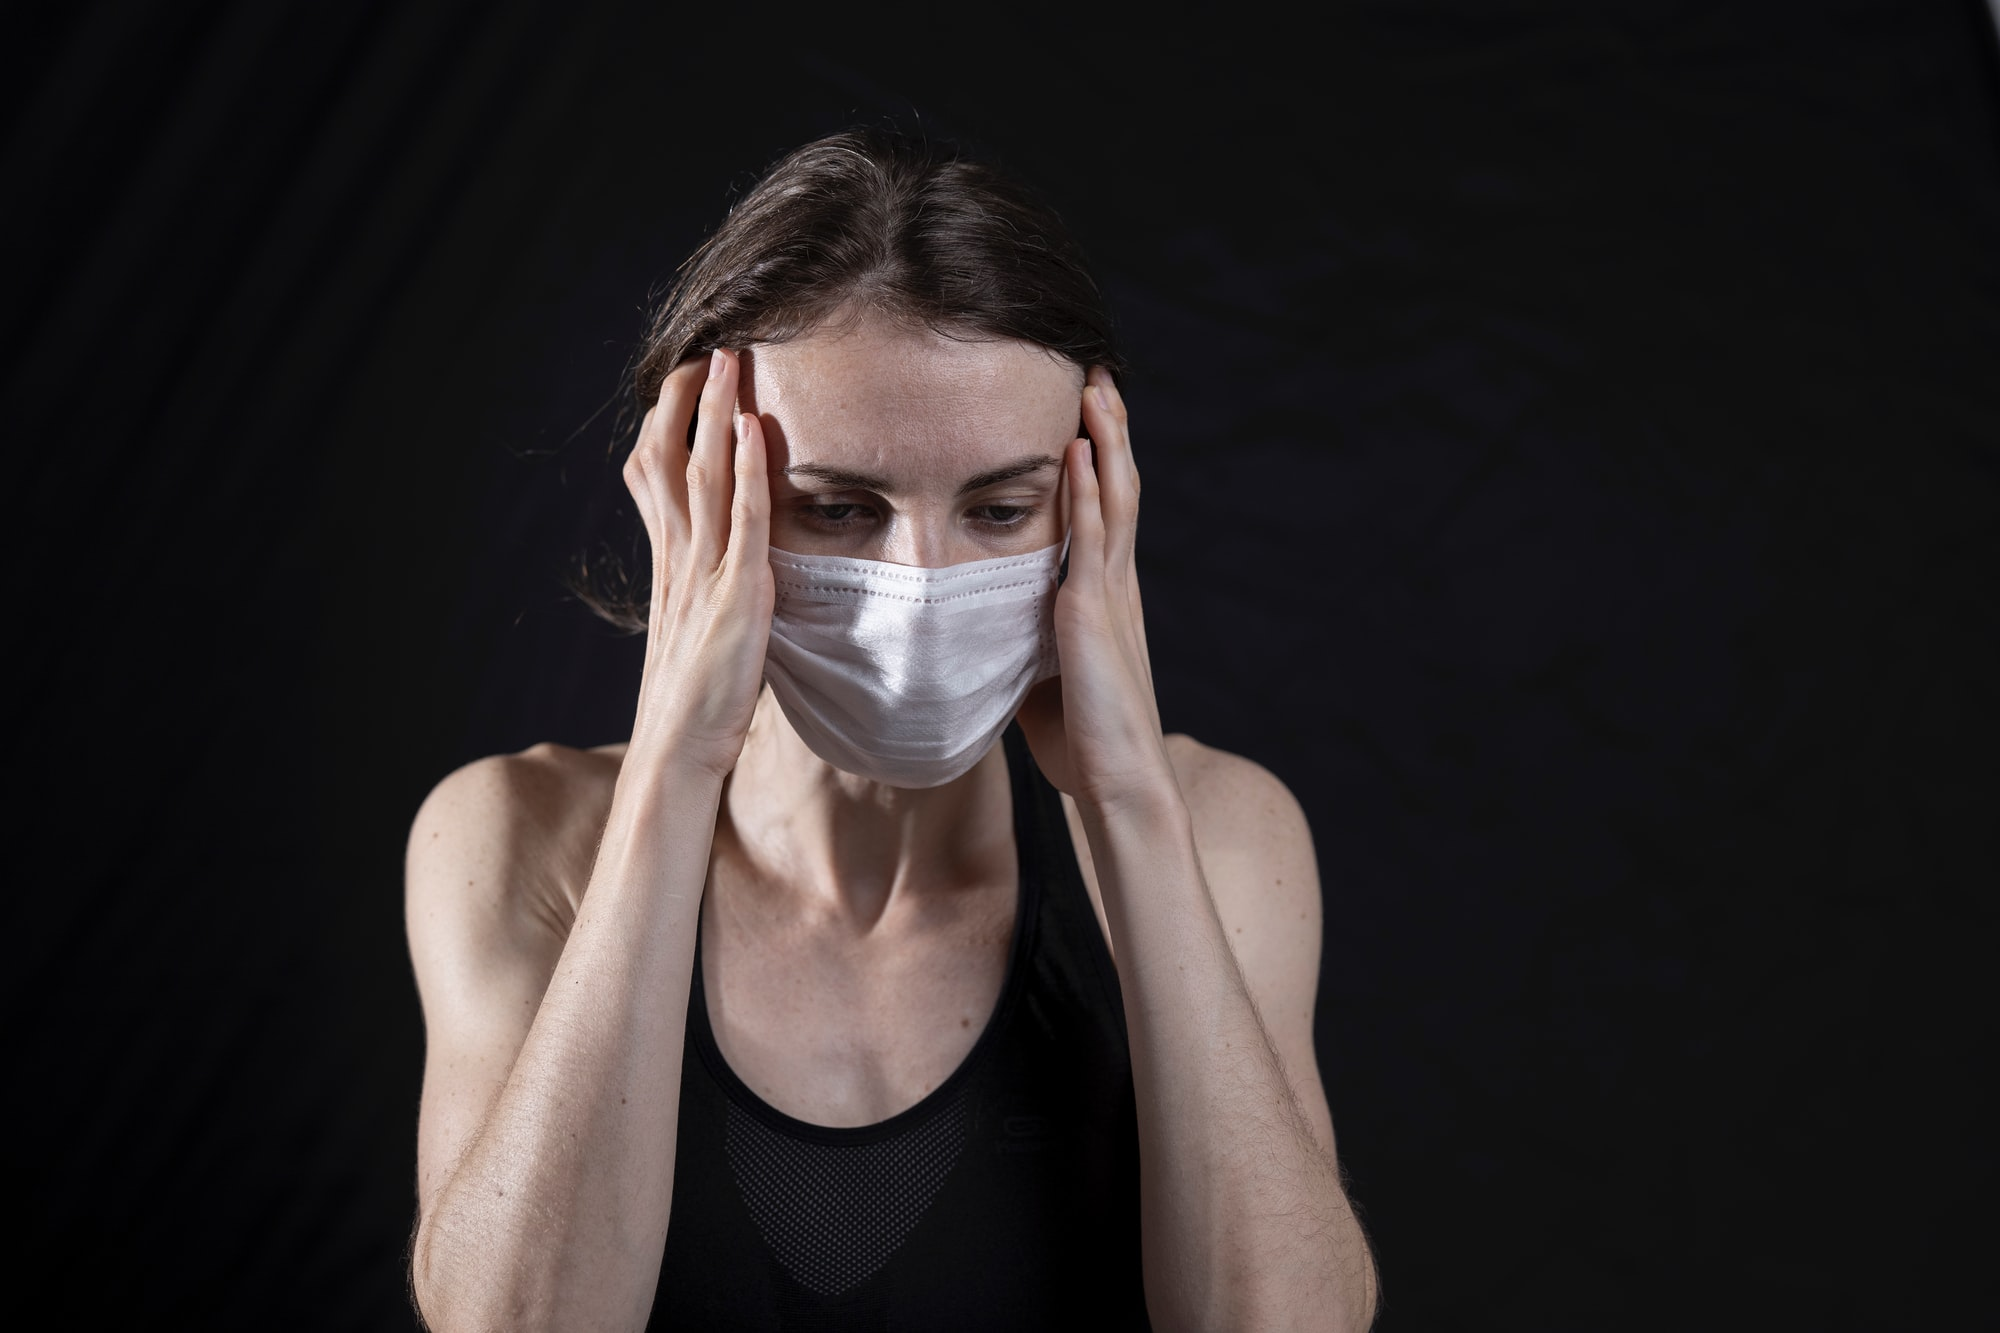 young woman and coronavirus mask